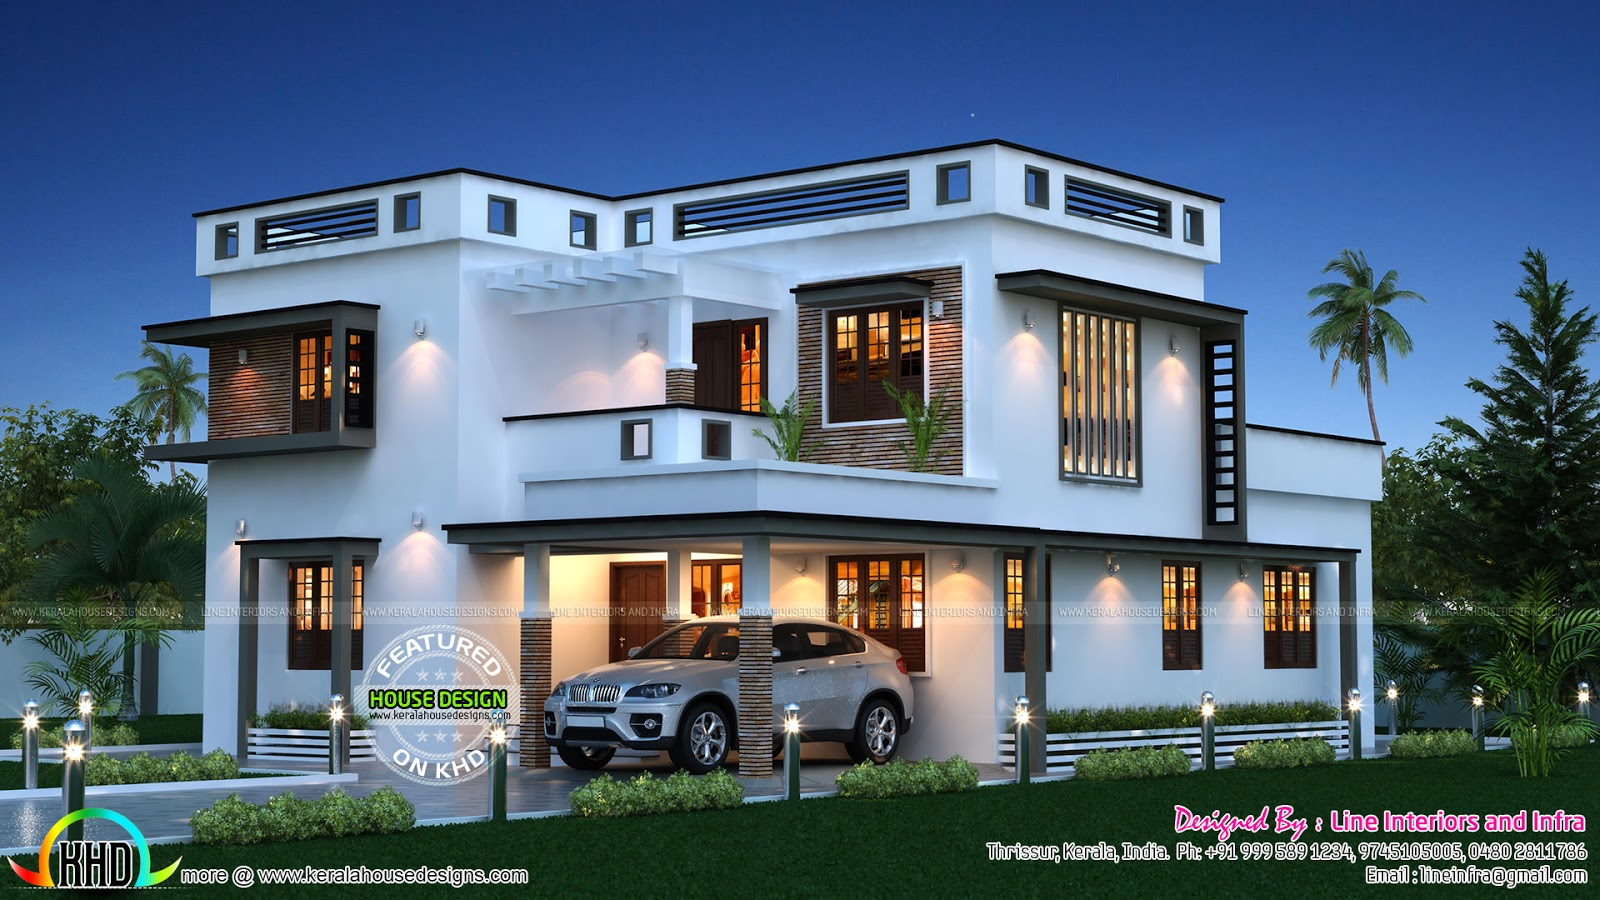 Beautiful 1600 sq ft home kerala home design and floor plans - Gorgeous housessquare meters ...